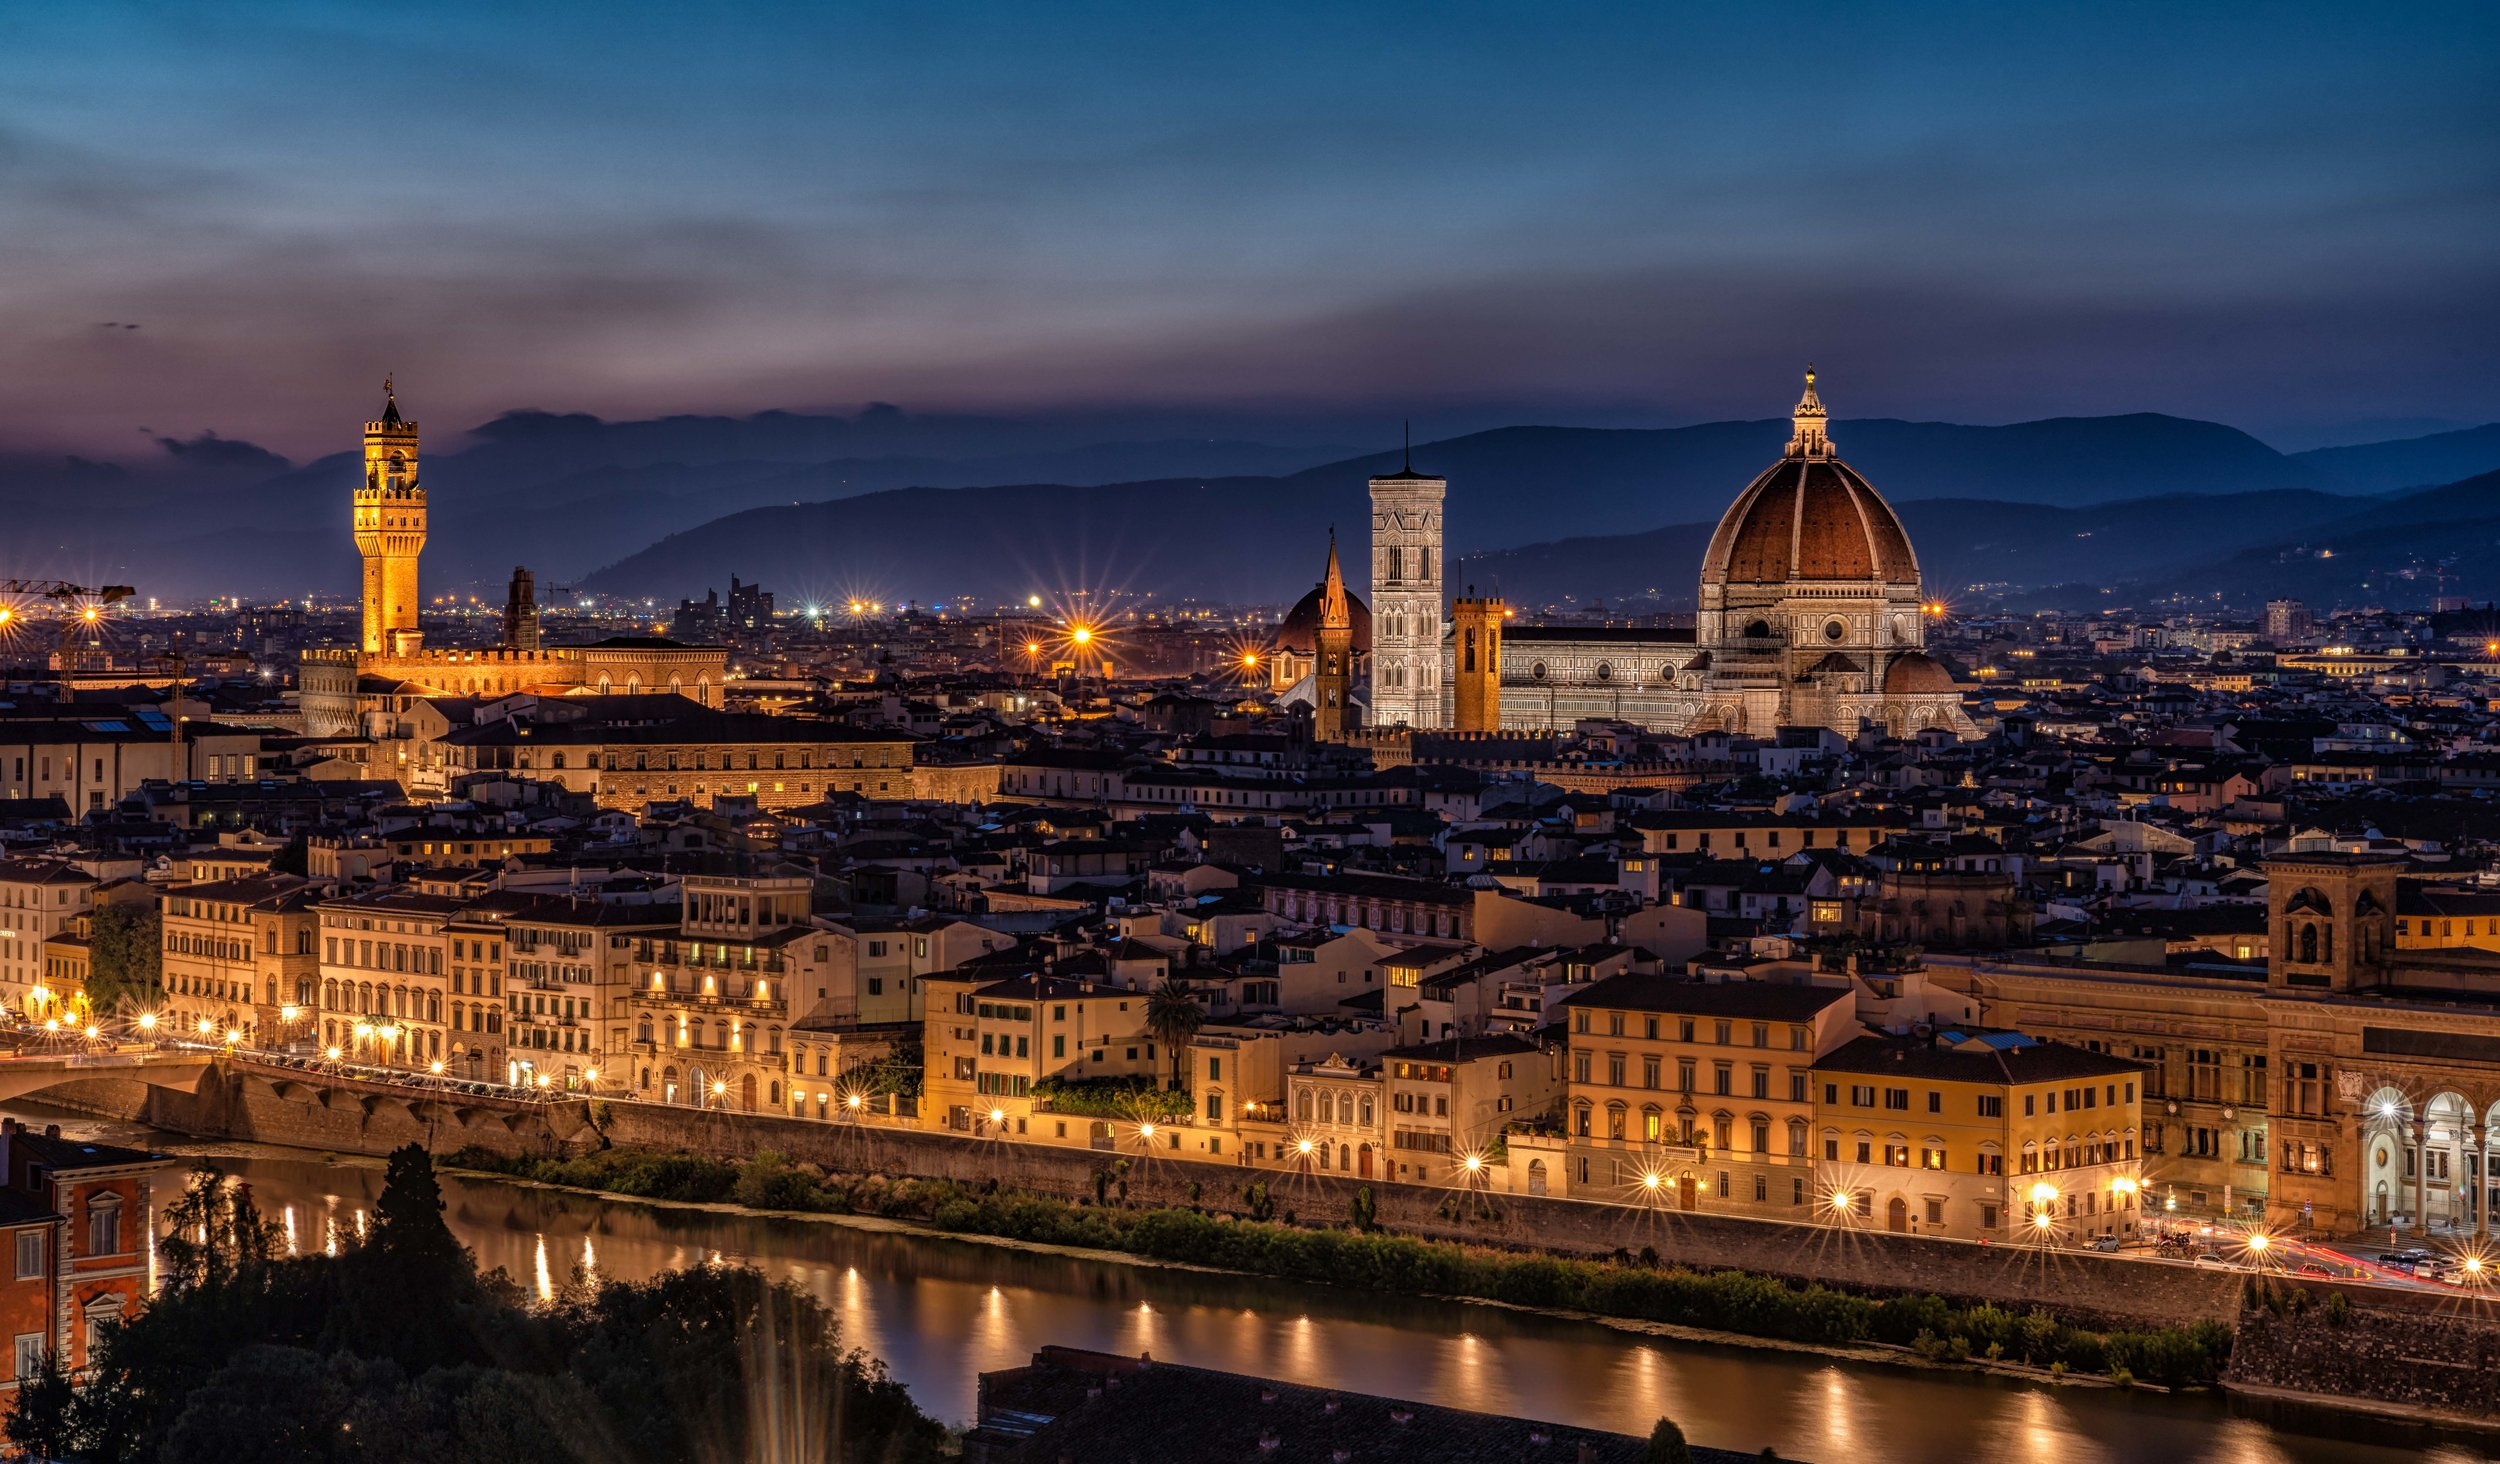 City of Florence - Piazzale Michelangelo